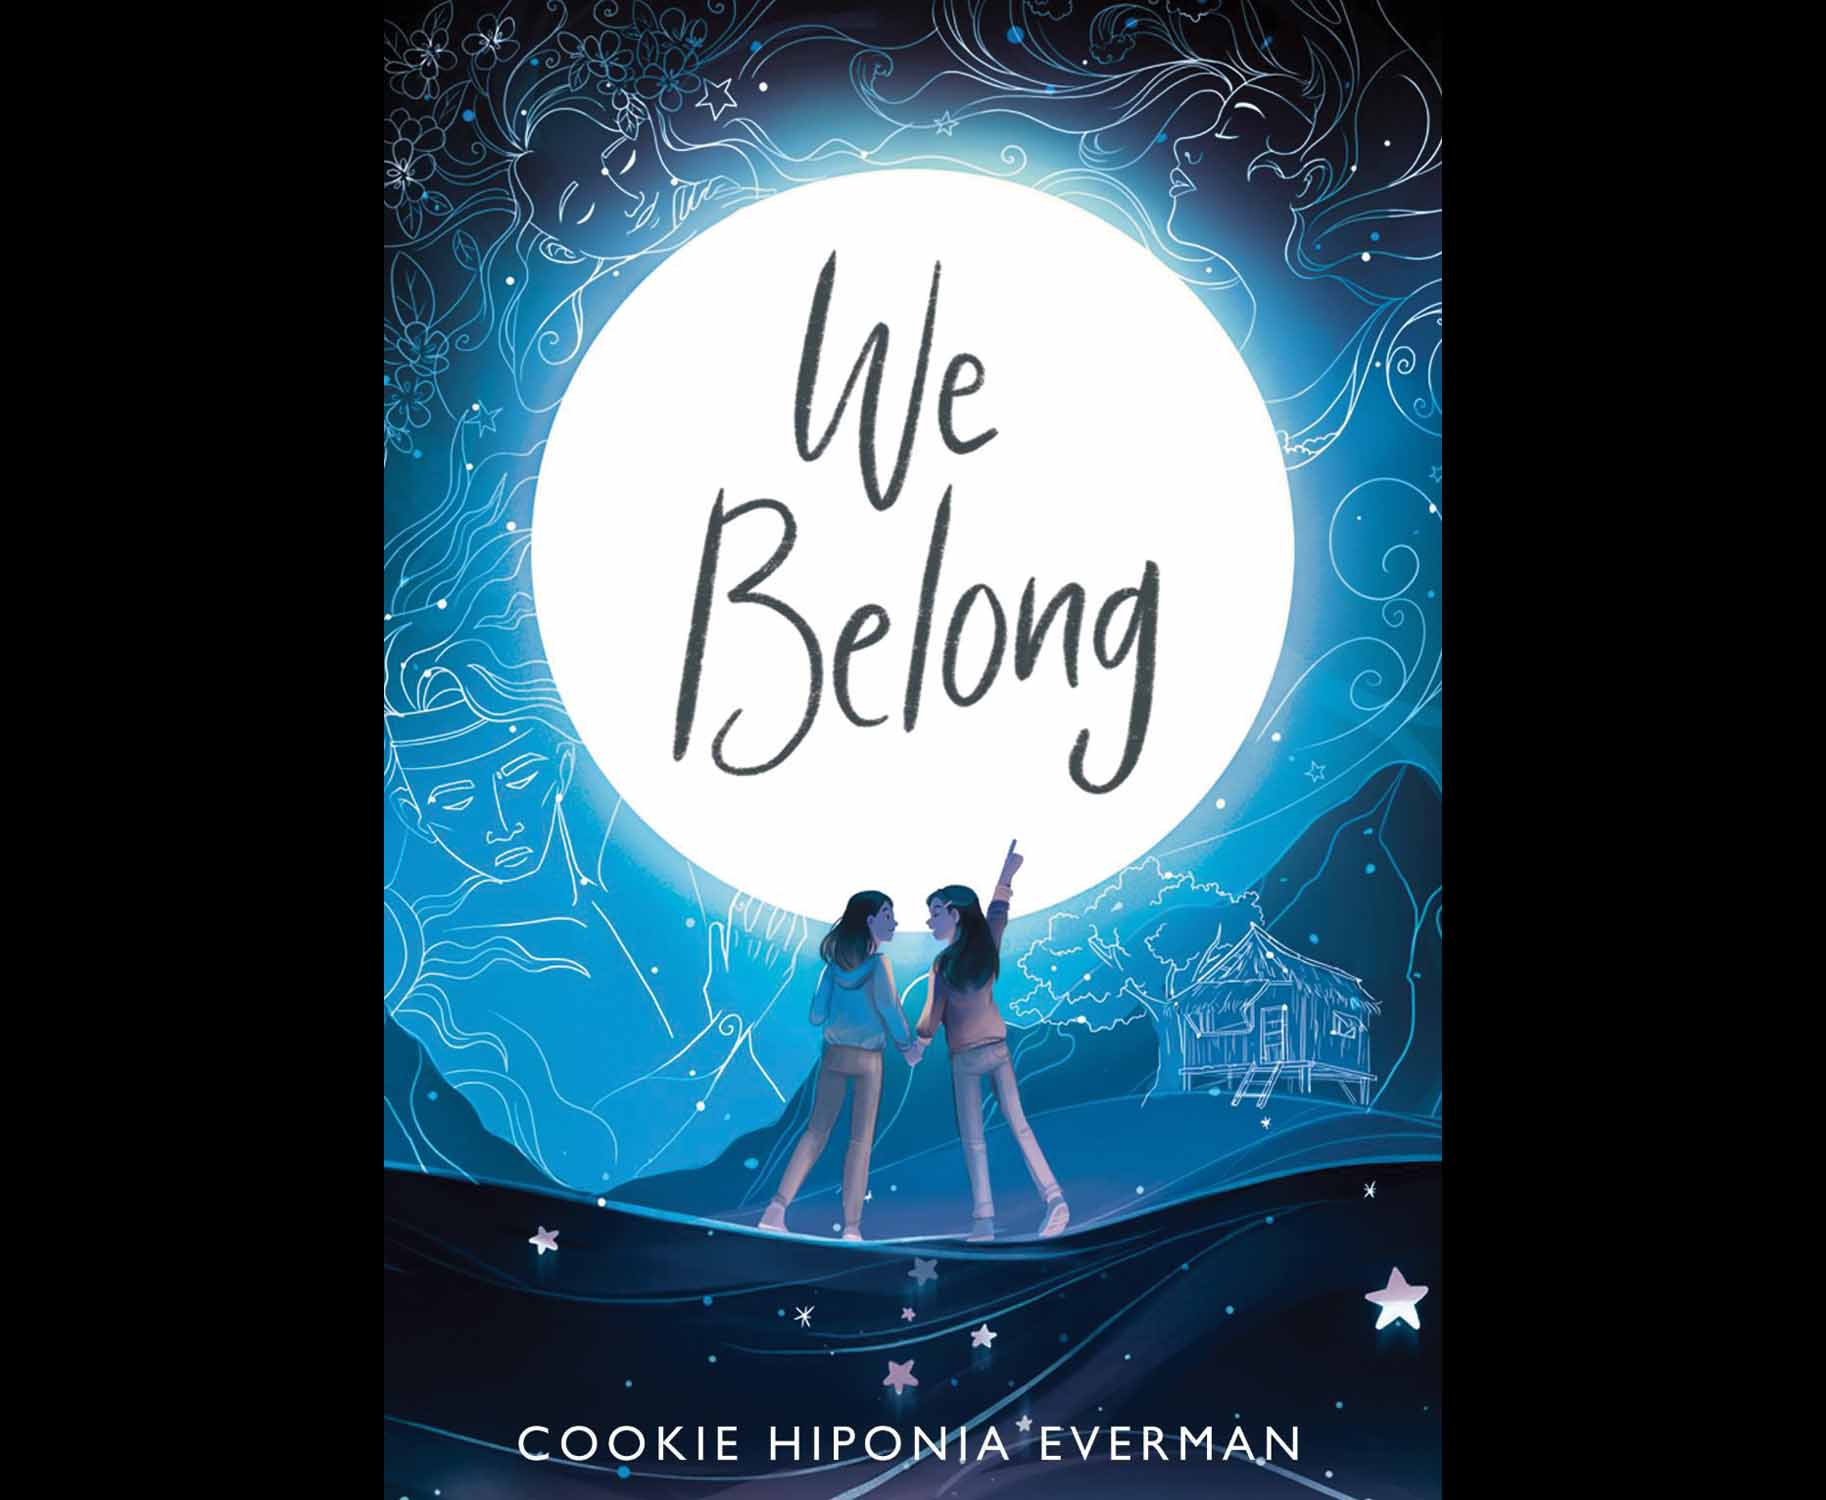 www.asianjournal.com: Immigrant mom's debut book tackles family history mixed with Filipino mythology and culture —